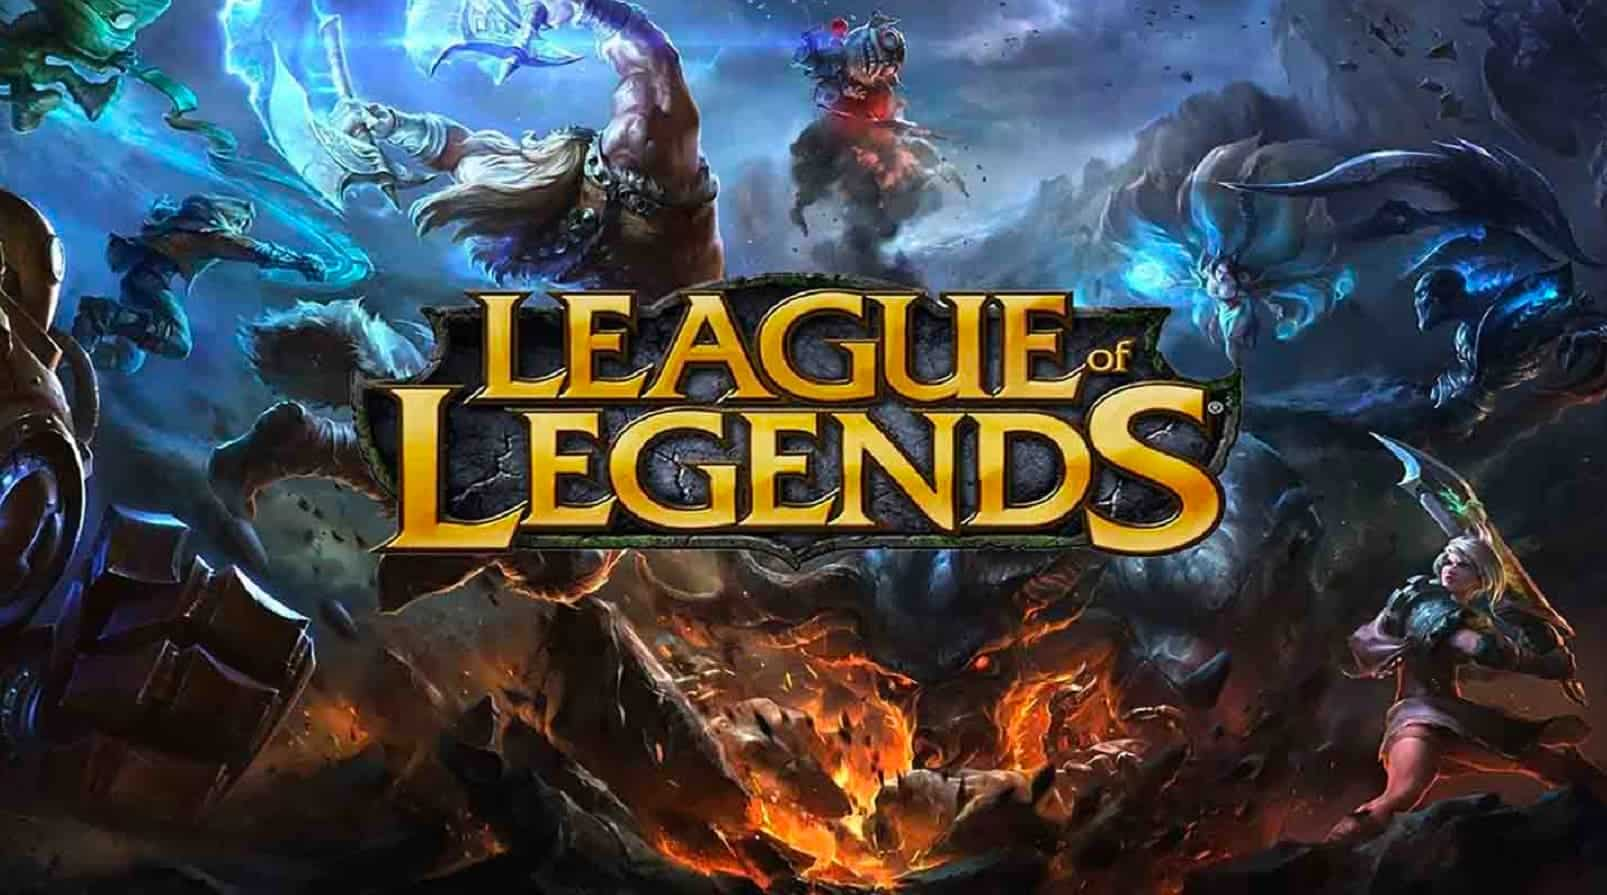 League of Legends: Mobile may be unveiled at Riot's 10-year anniversary  event | Dot Esports